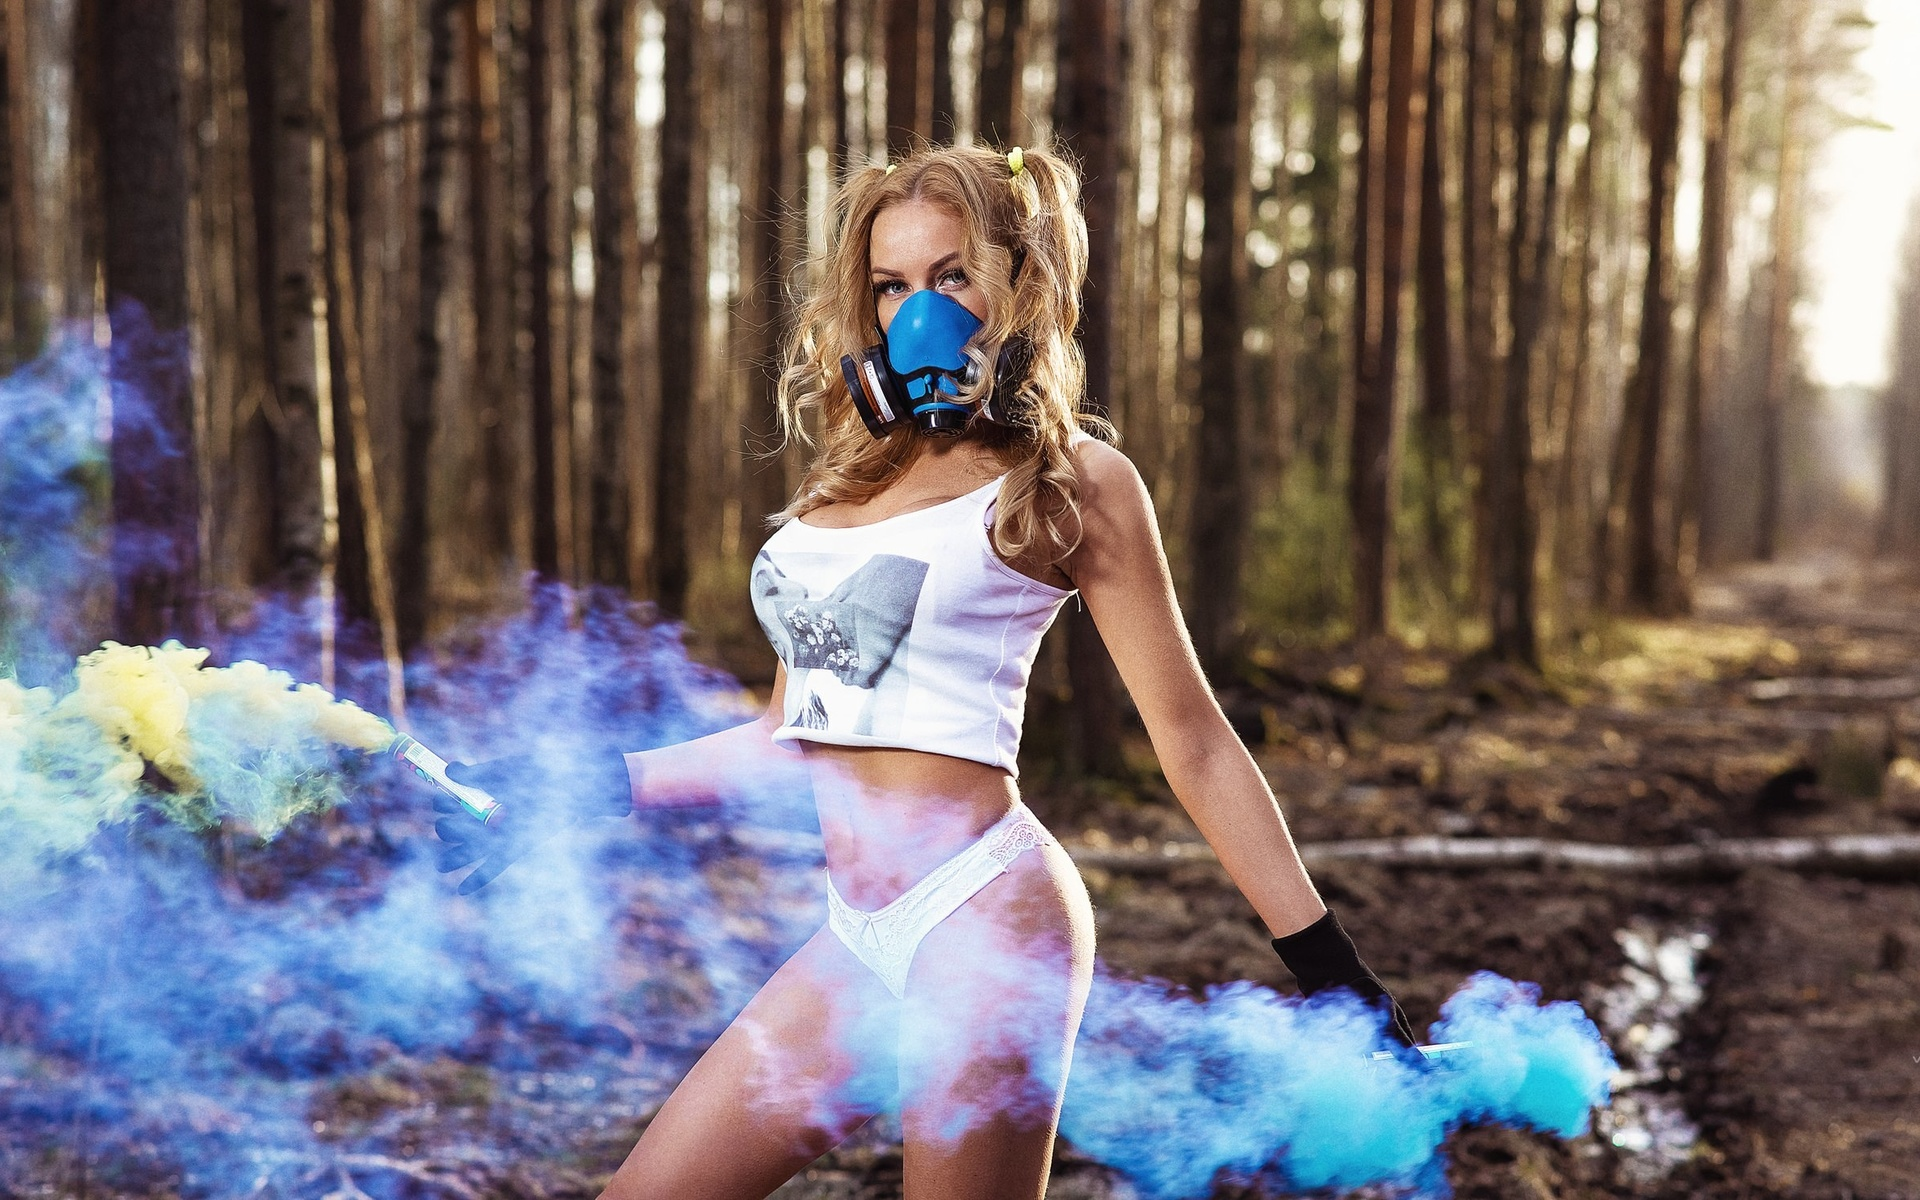 women, gas masks, trees, white panties, smoke, forest, women outdoors, nikolas verano, pigtails, tank top, brunette, belly, gloves